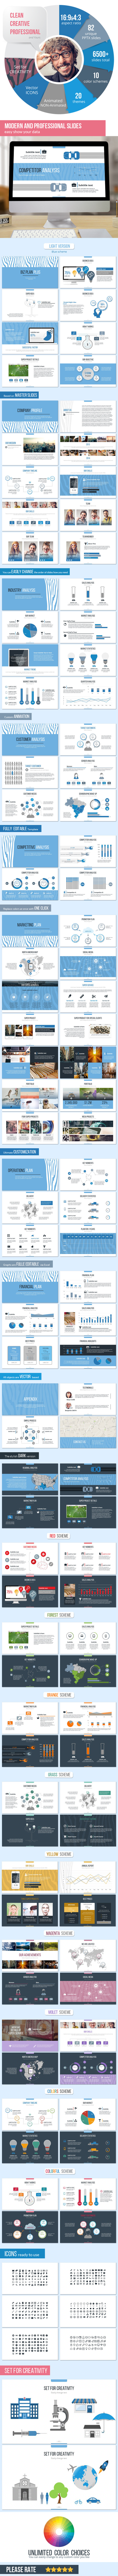 GraphicRiver Business Plan& PowerPoint Presentation Template 10598779